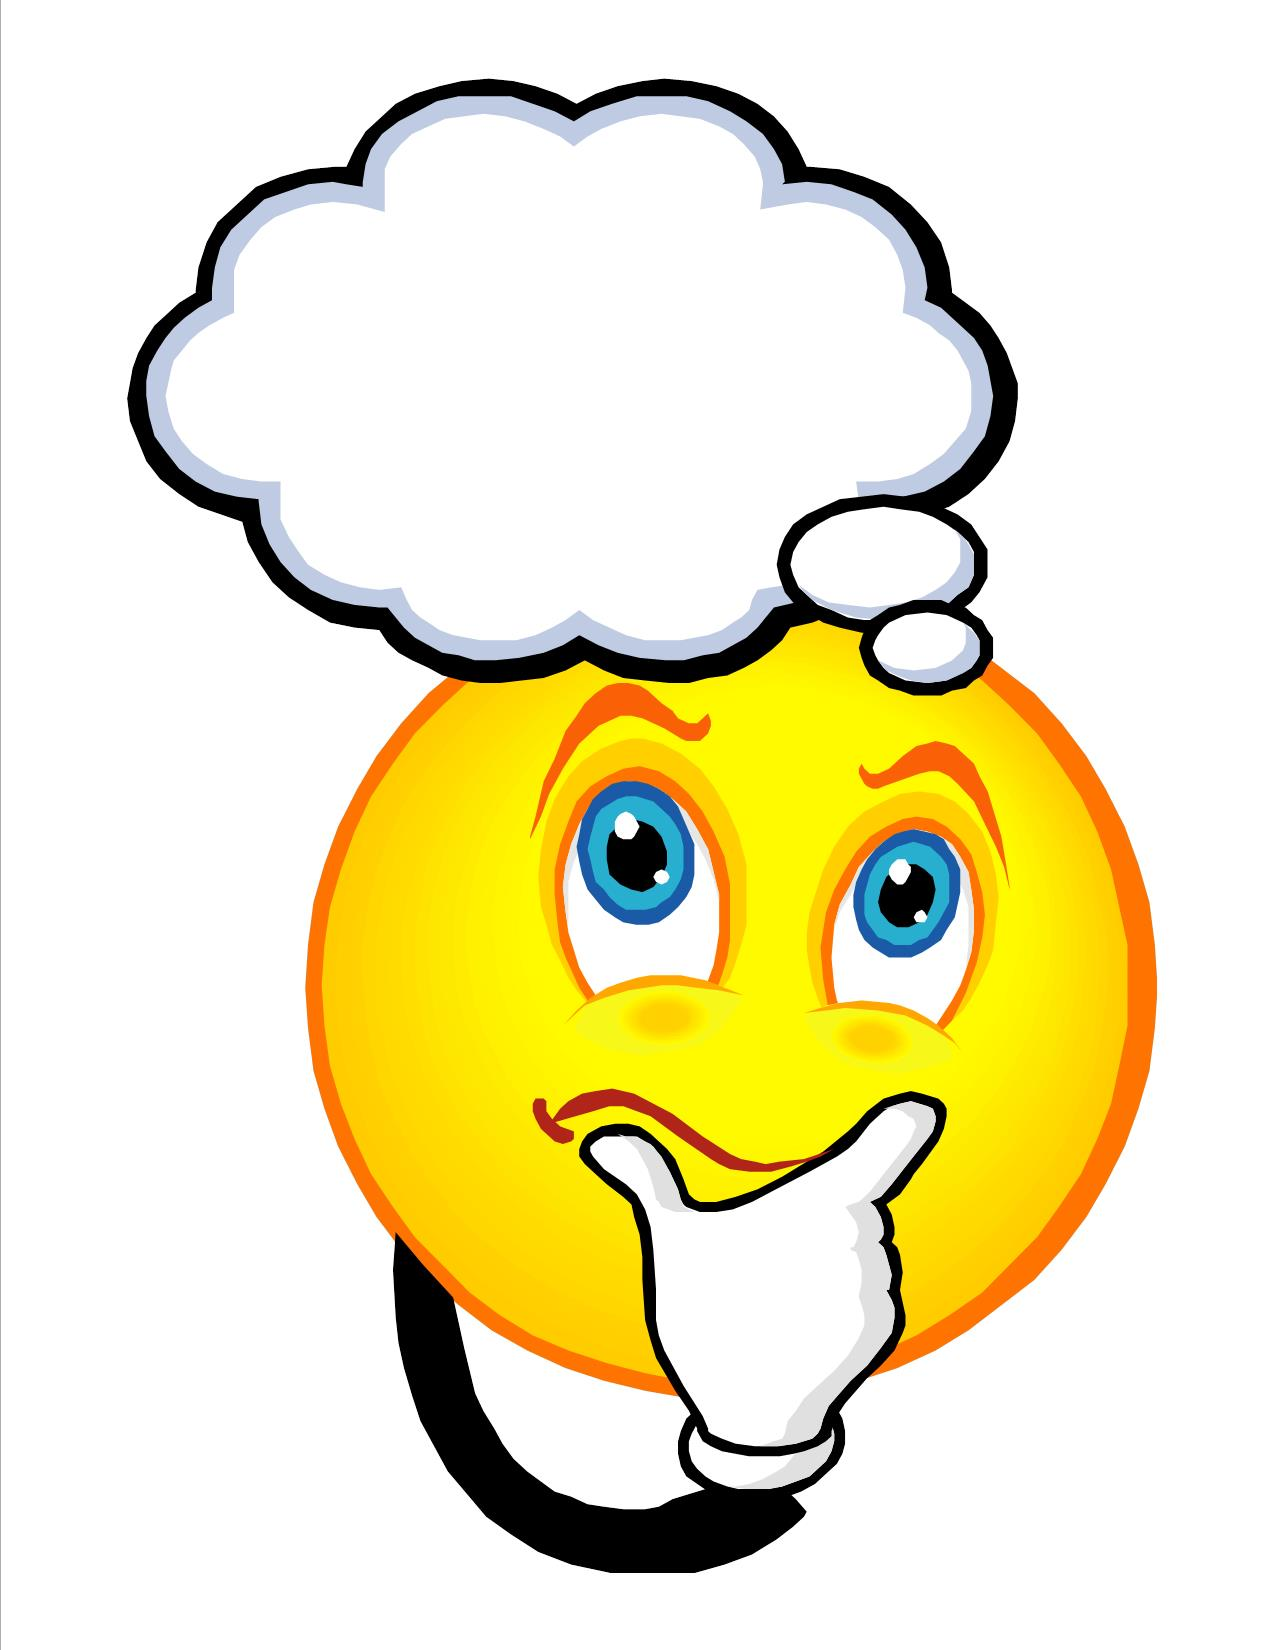 clipart face with question mark #19